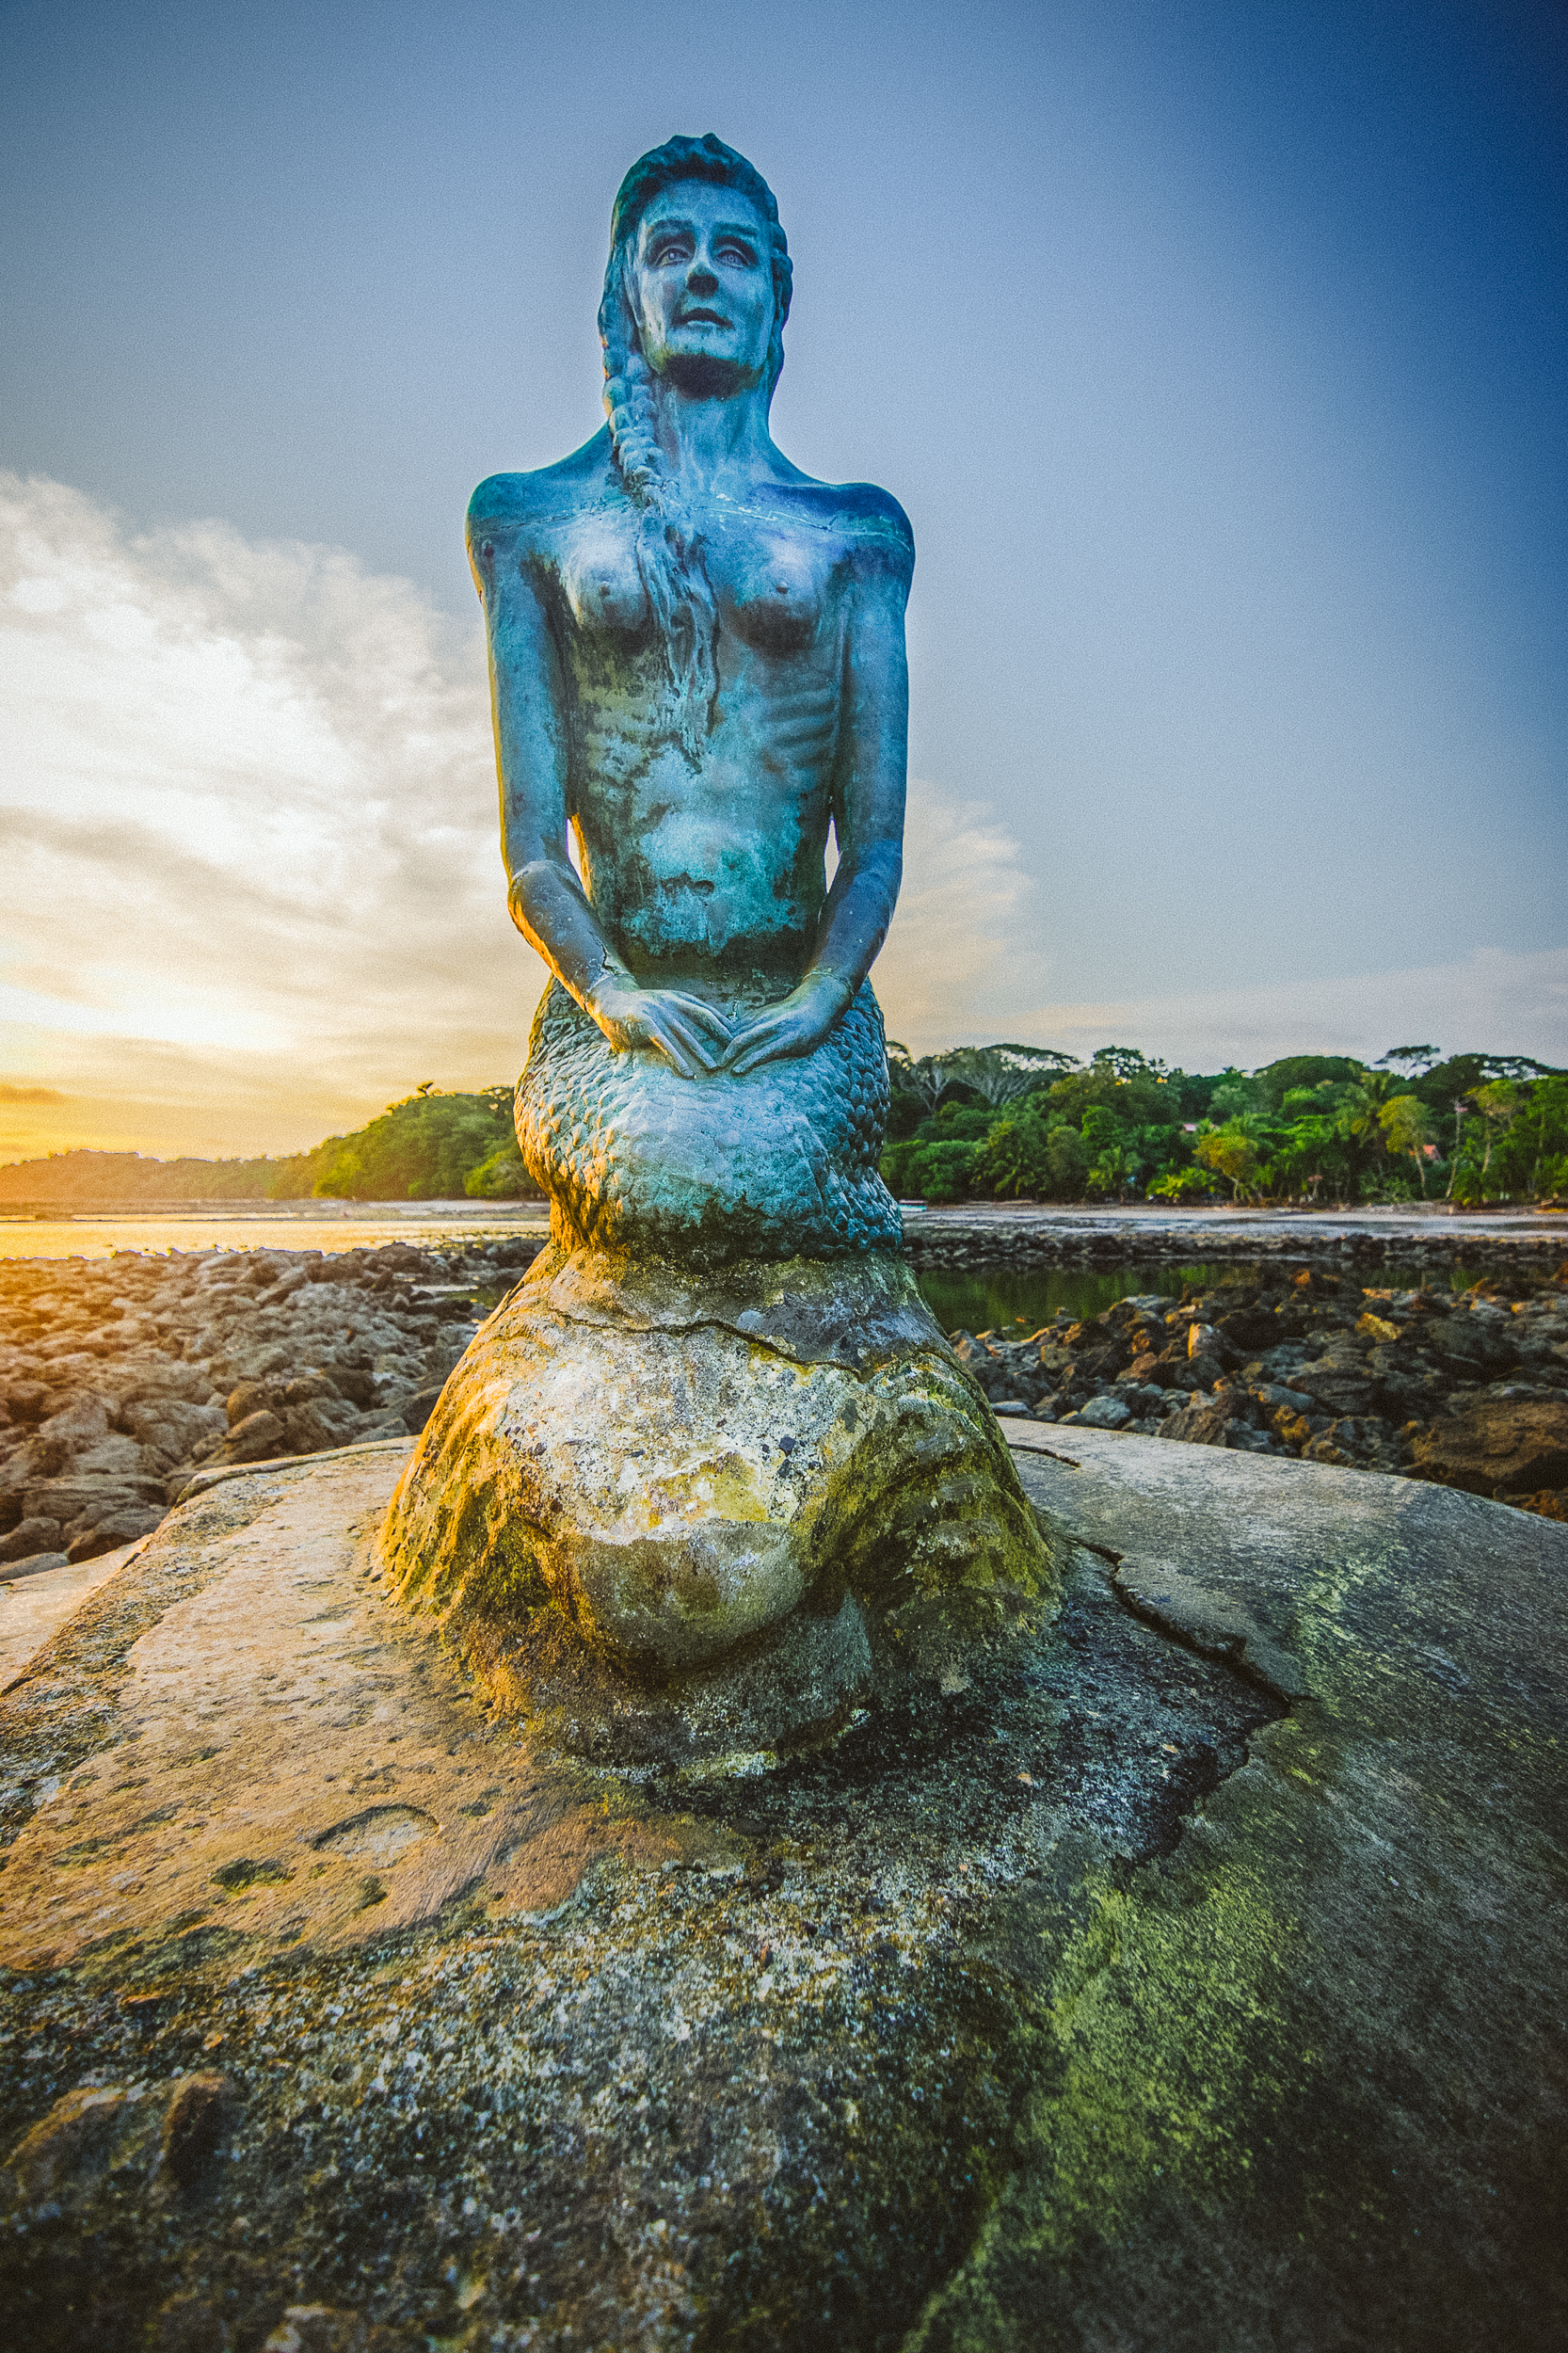 La Sirena is this sculpture of a mermaid far out into the ocean. At high tide, she is completely surrounded by the ocean but at low tide, you can easily walk there.